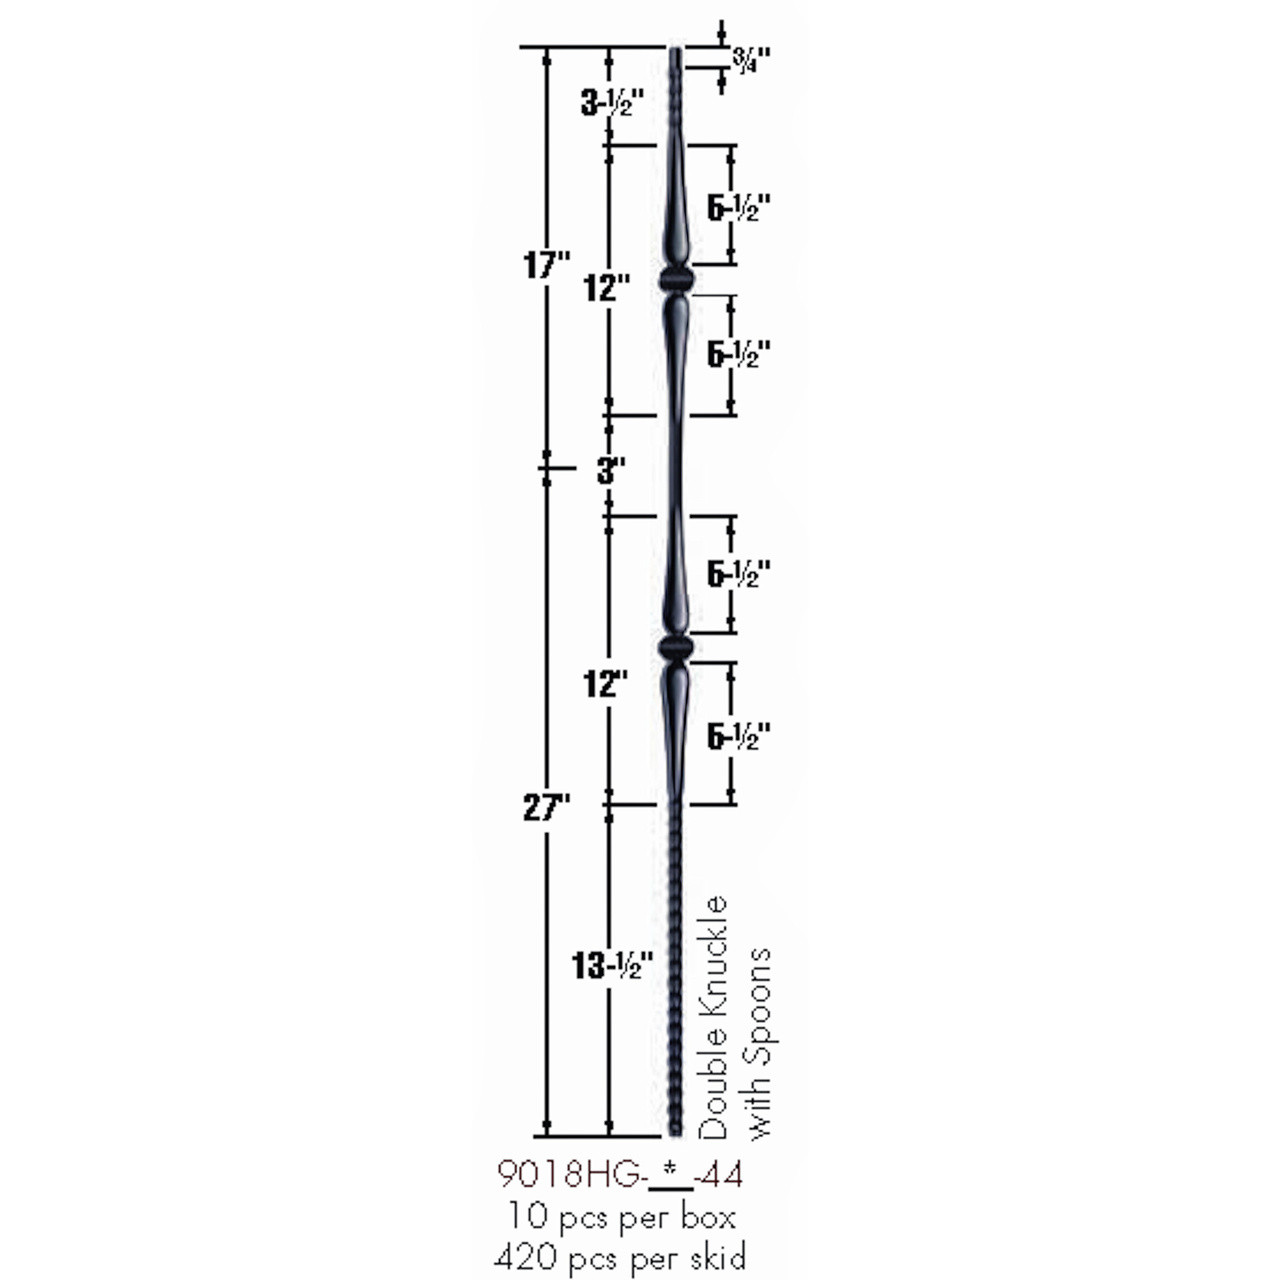 9018HG Gothic Double Knuckle Hammered Baluster Dimensional Information